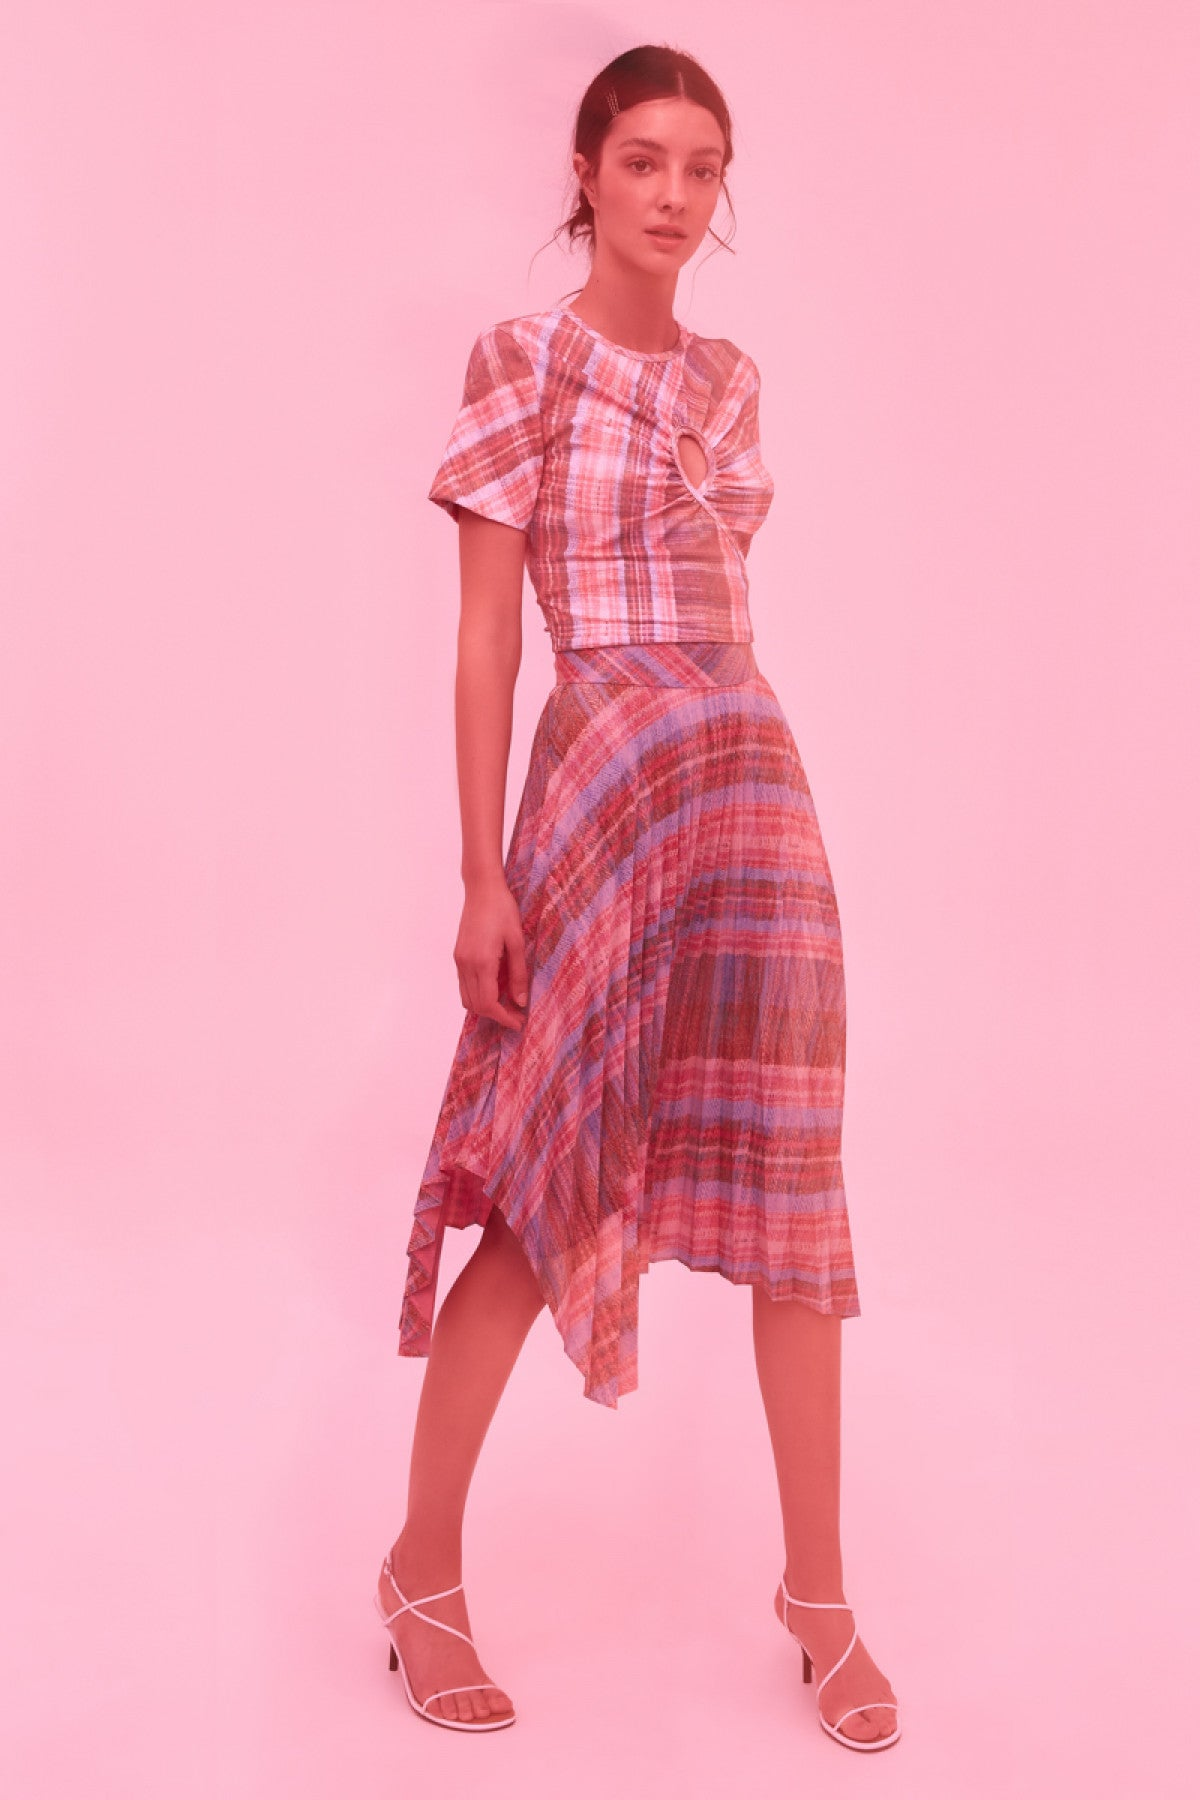 DIFFERENT STORY SHORT SLEEVE TOP pink tartan